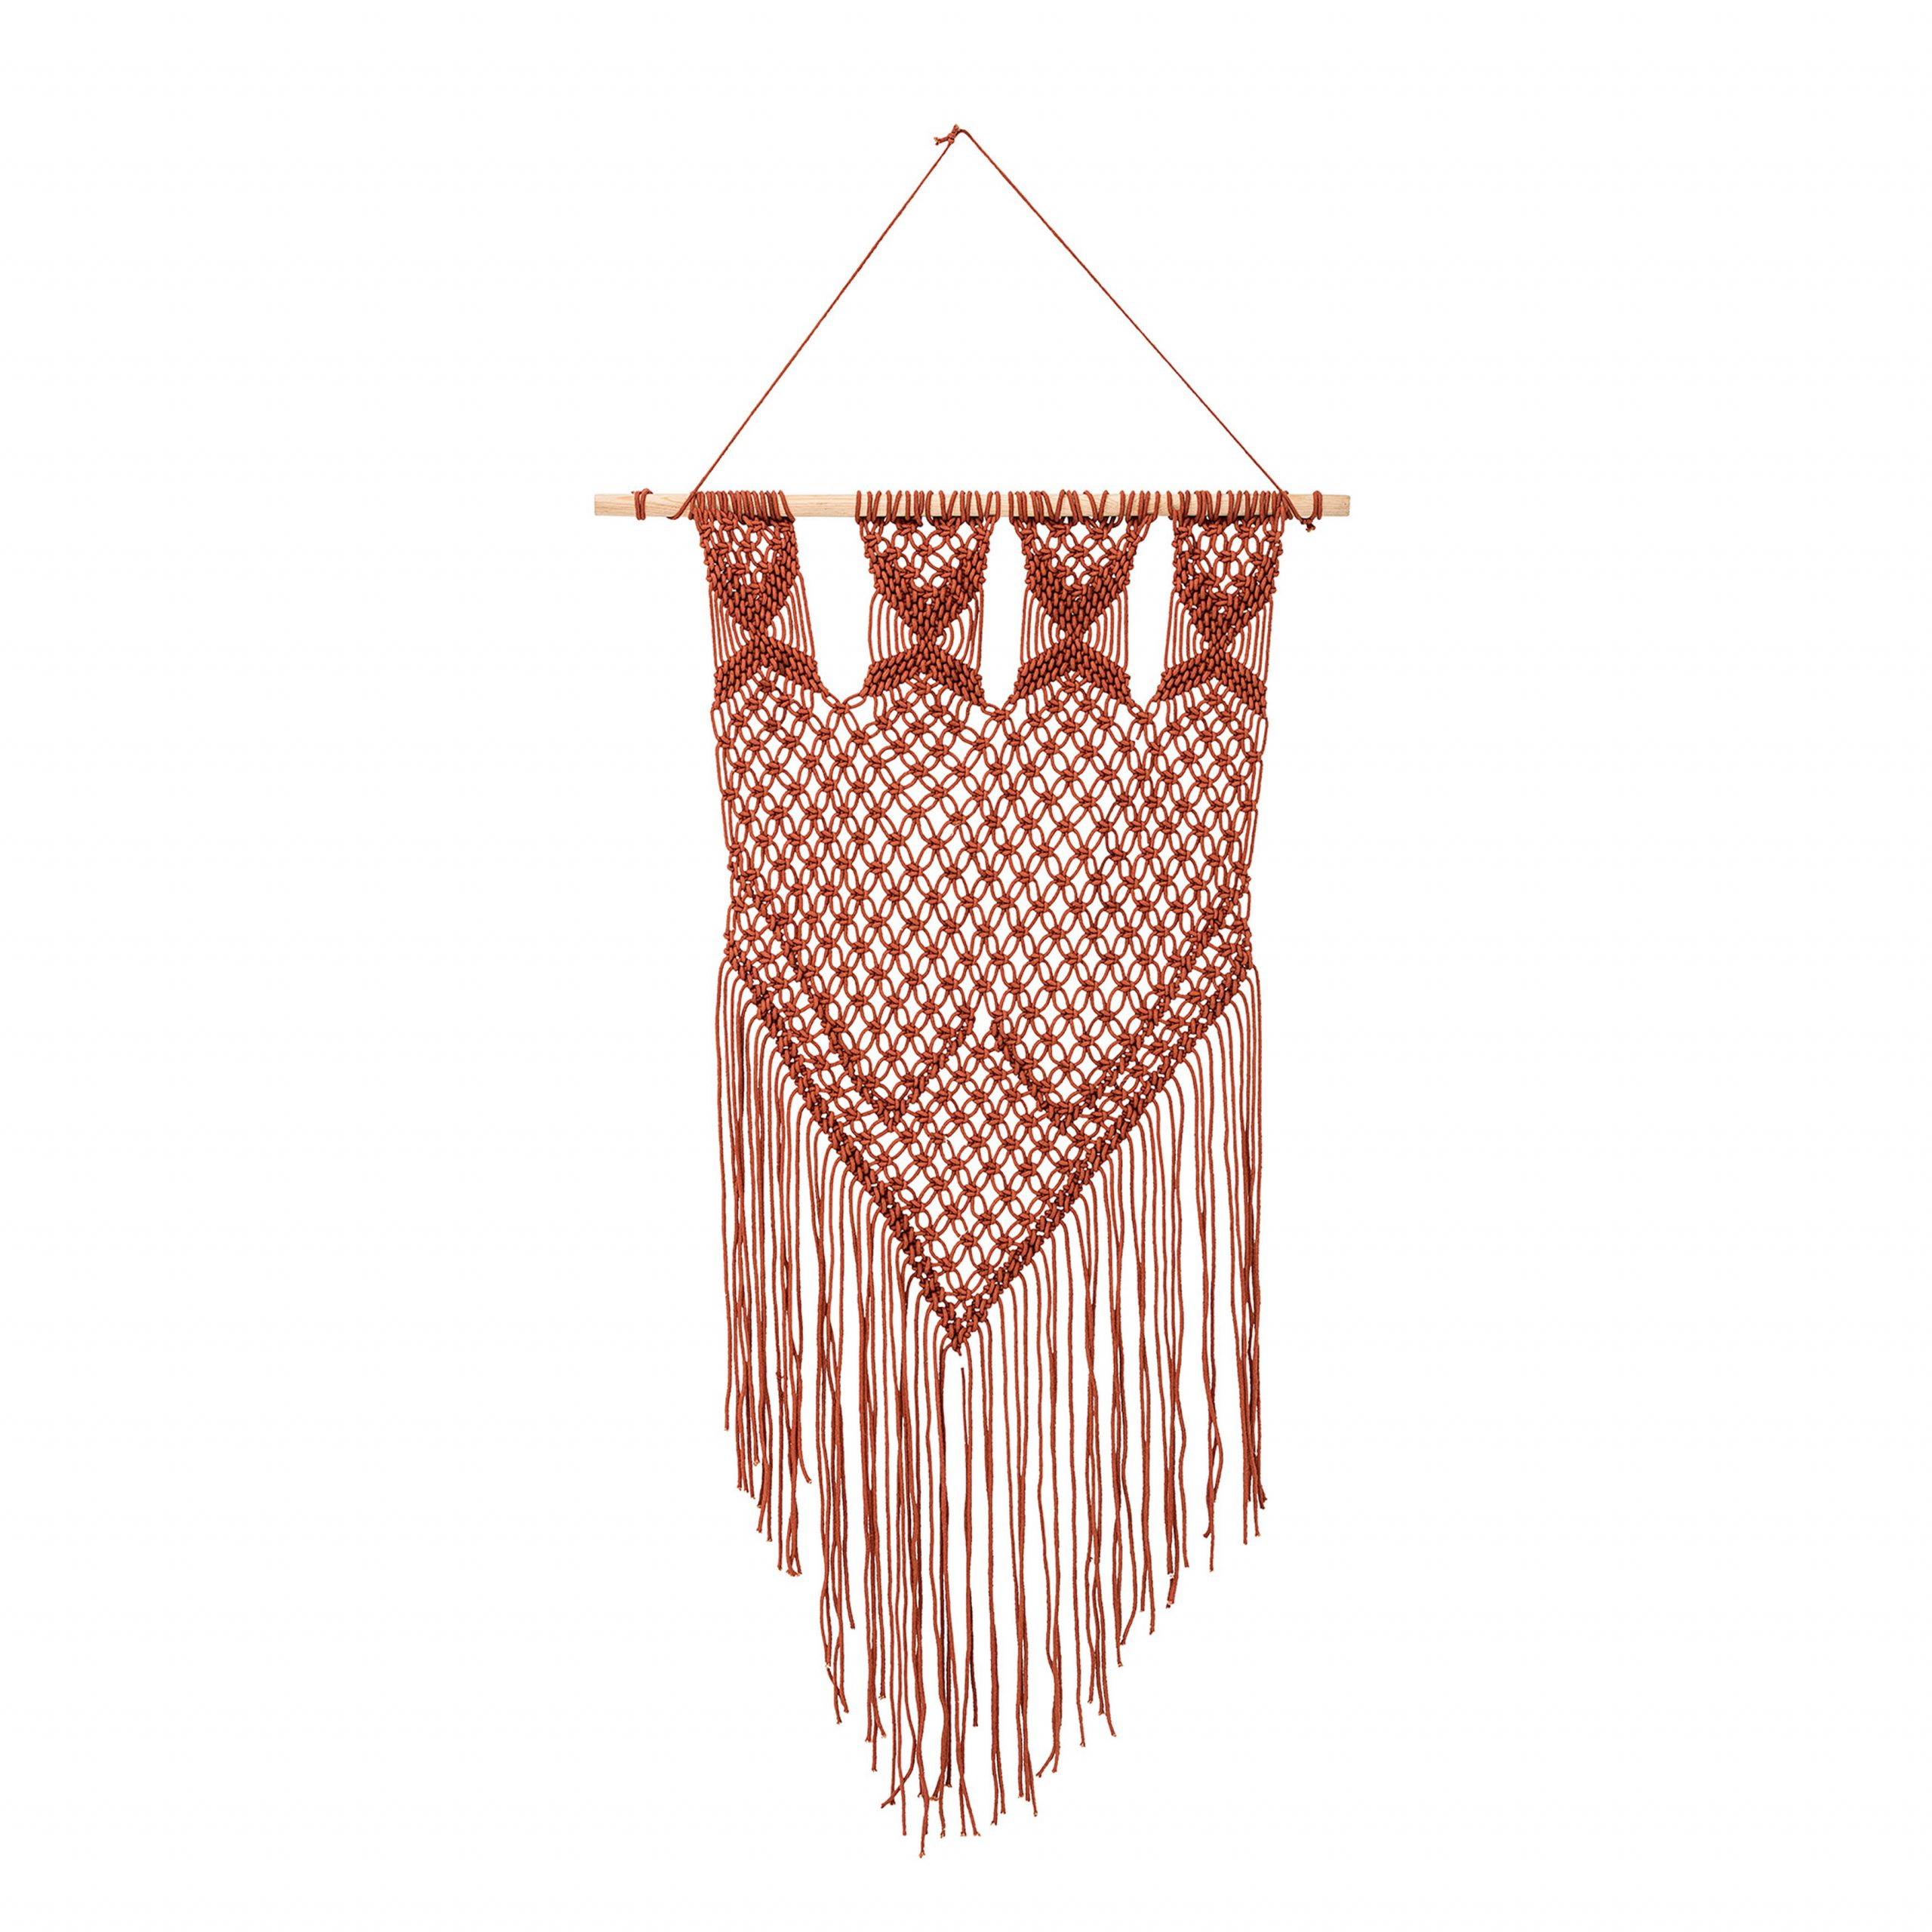 Cotton Wall Hanging With Hanging Accessories Included Intended For Current Blended Fabric Hohl Wall Hangings With Rod (View 11 of 20)